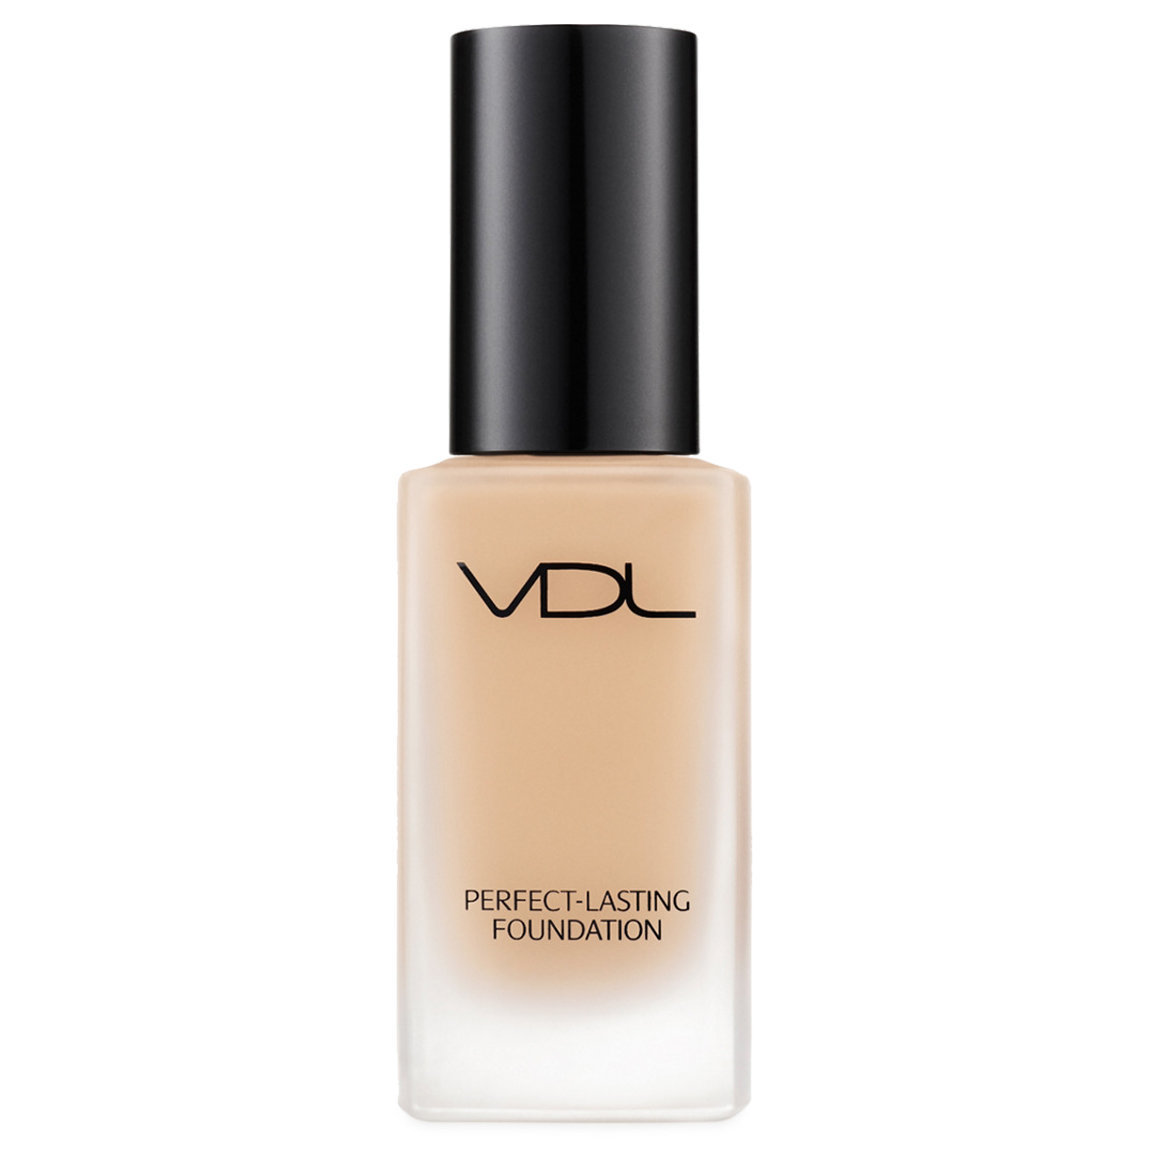 VDL Perfect-Lasting Foundation A04.5 alternative view 1.